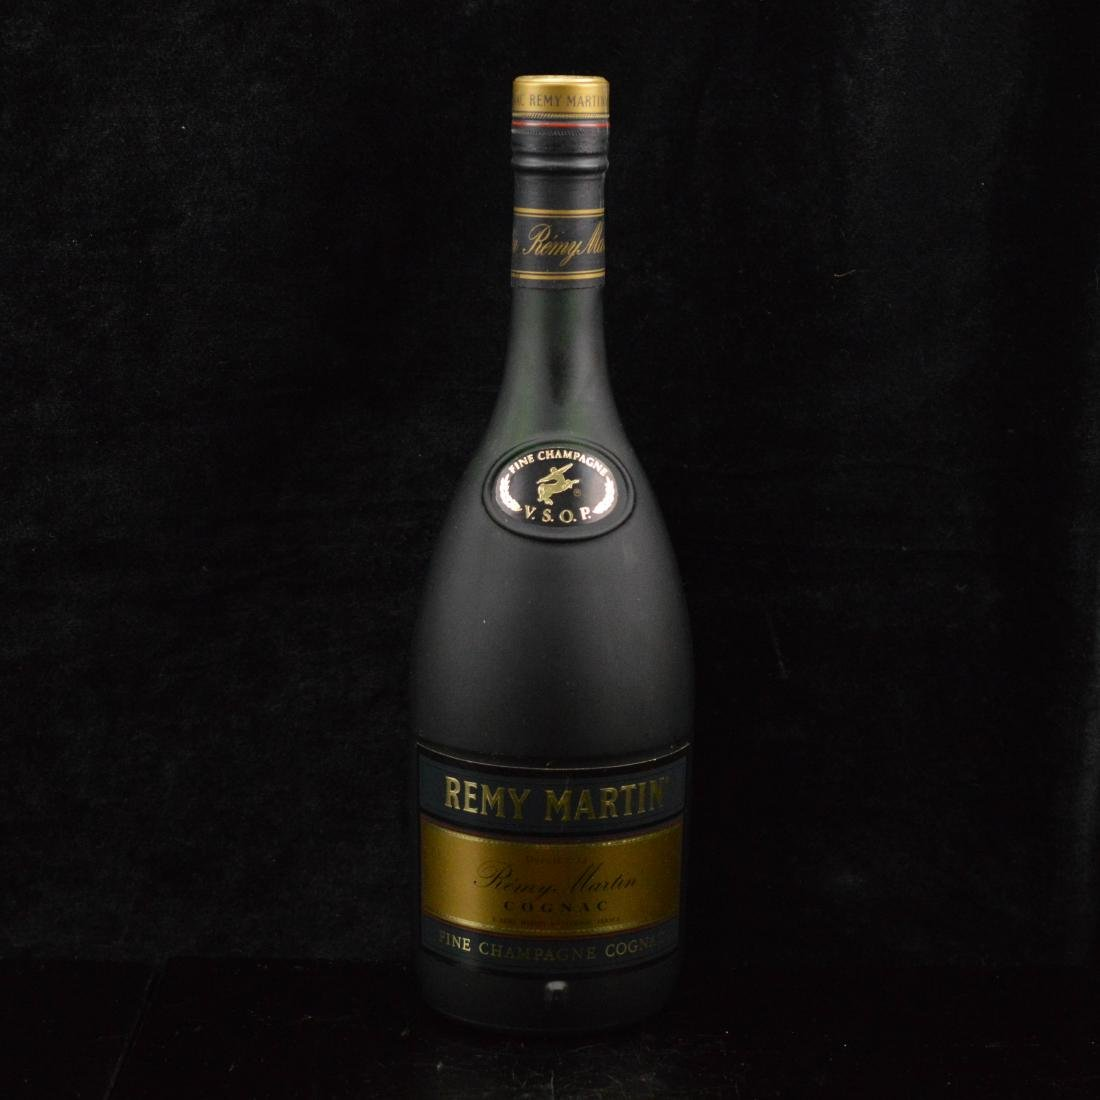 Remy Martin VSOP cognac with box